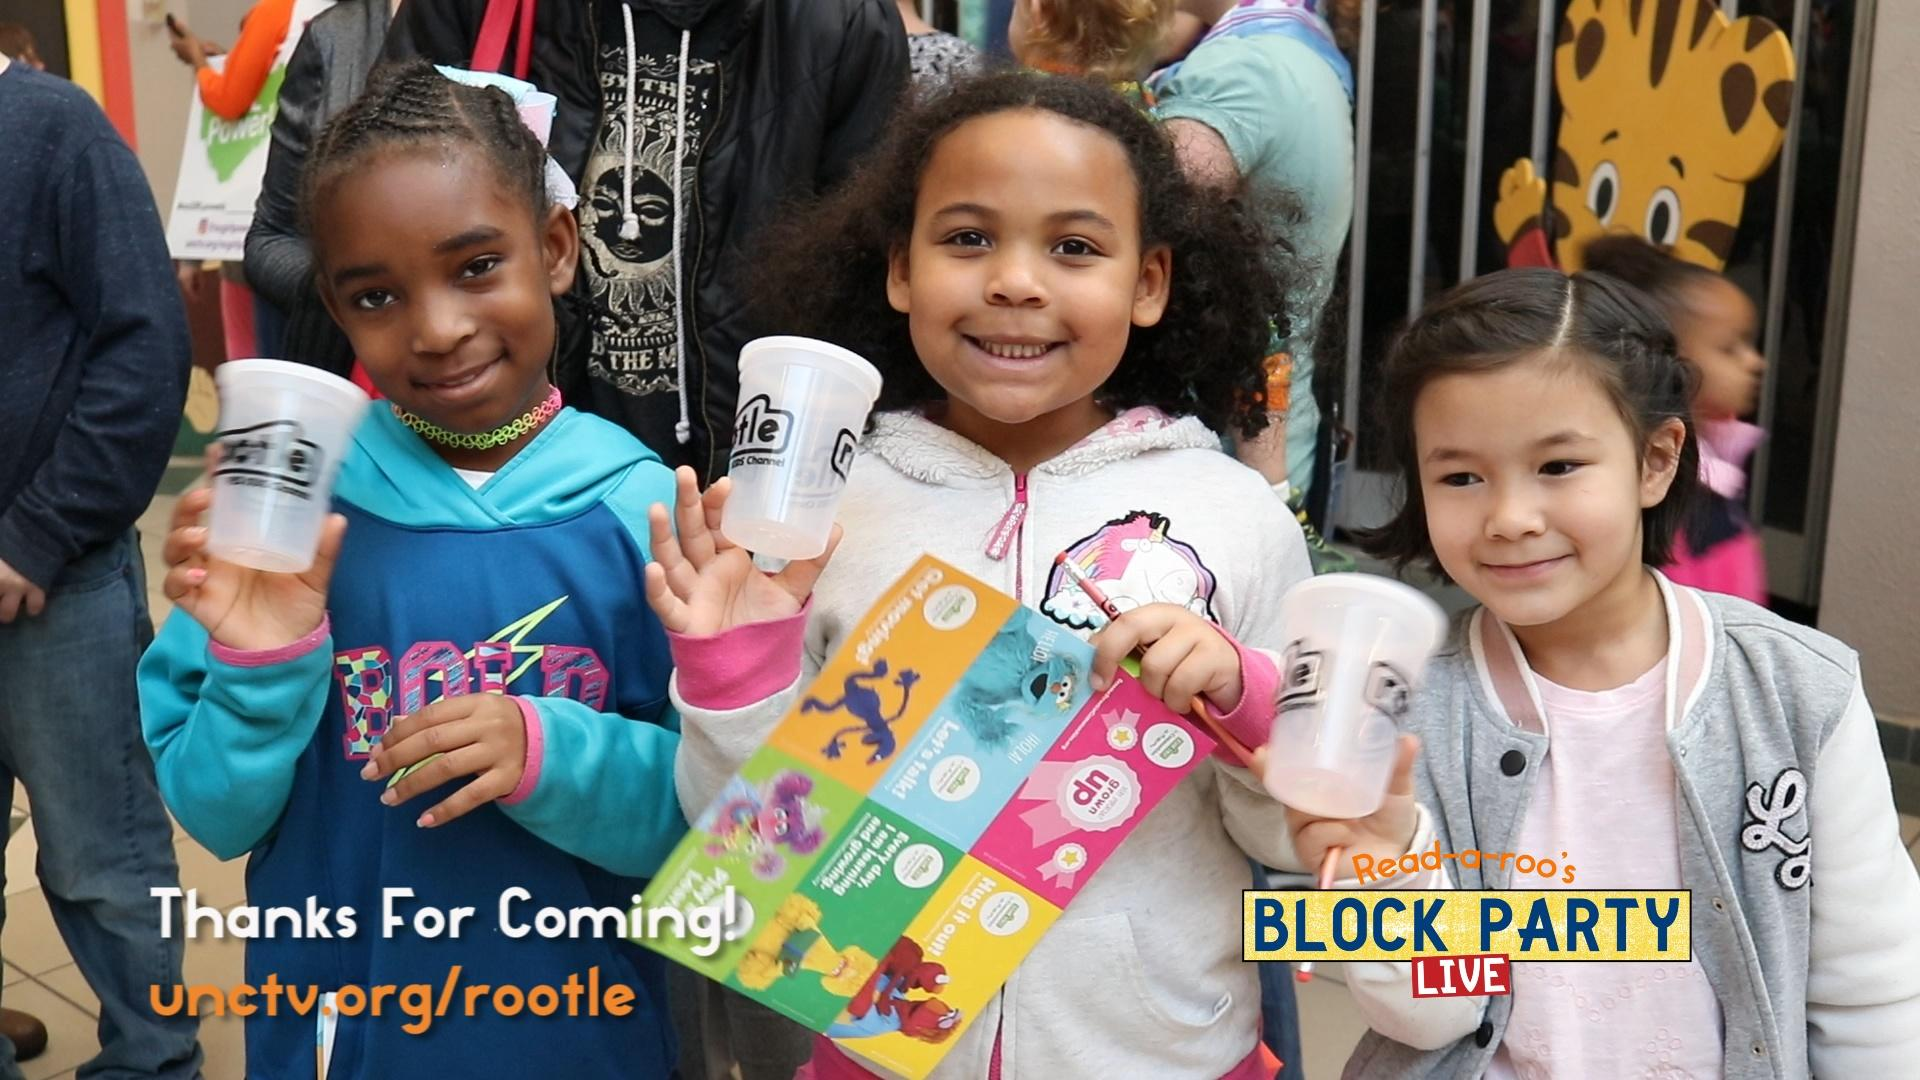 Read-a-roo's Block Party LIVE! in Hickory, NC - T